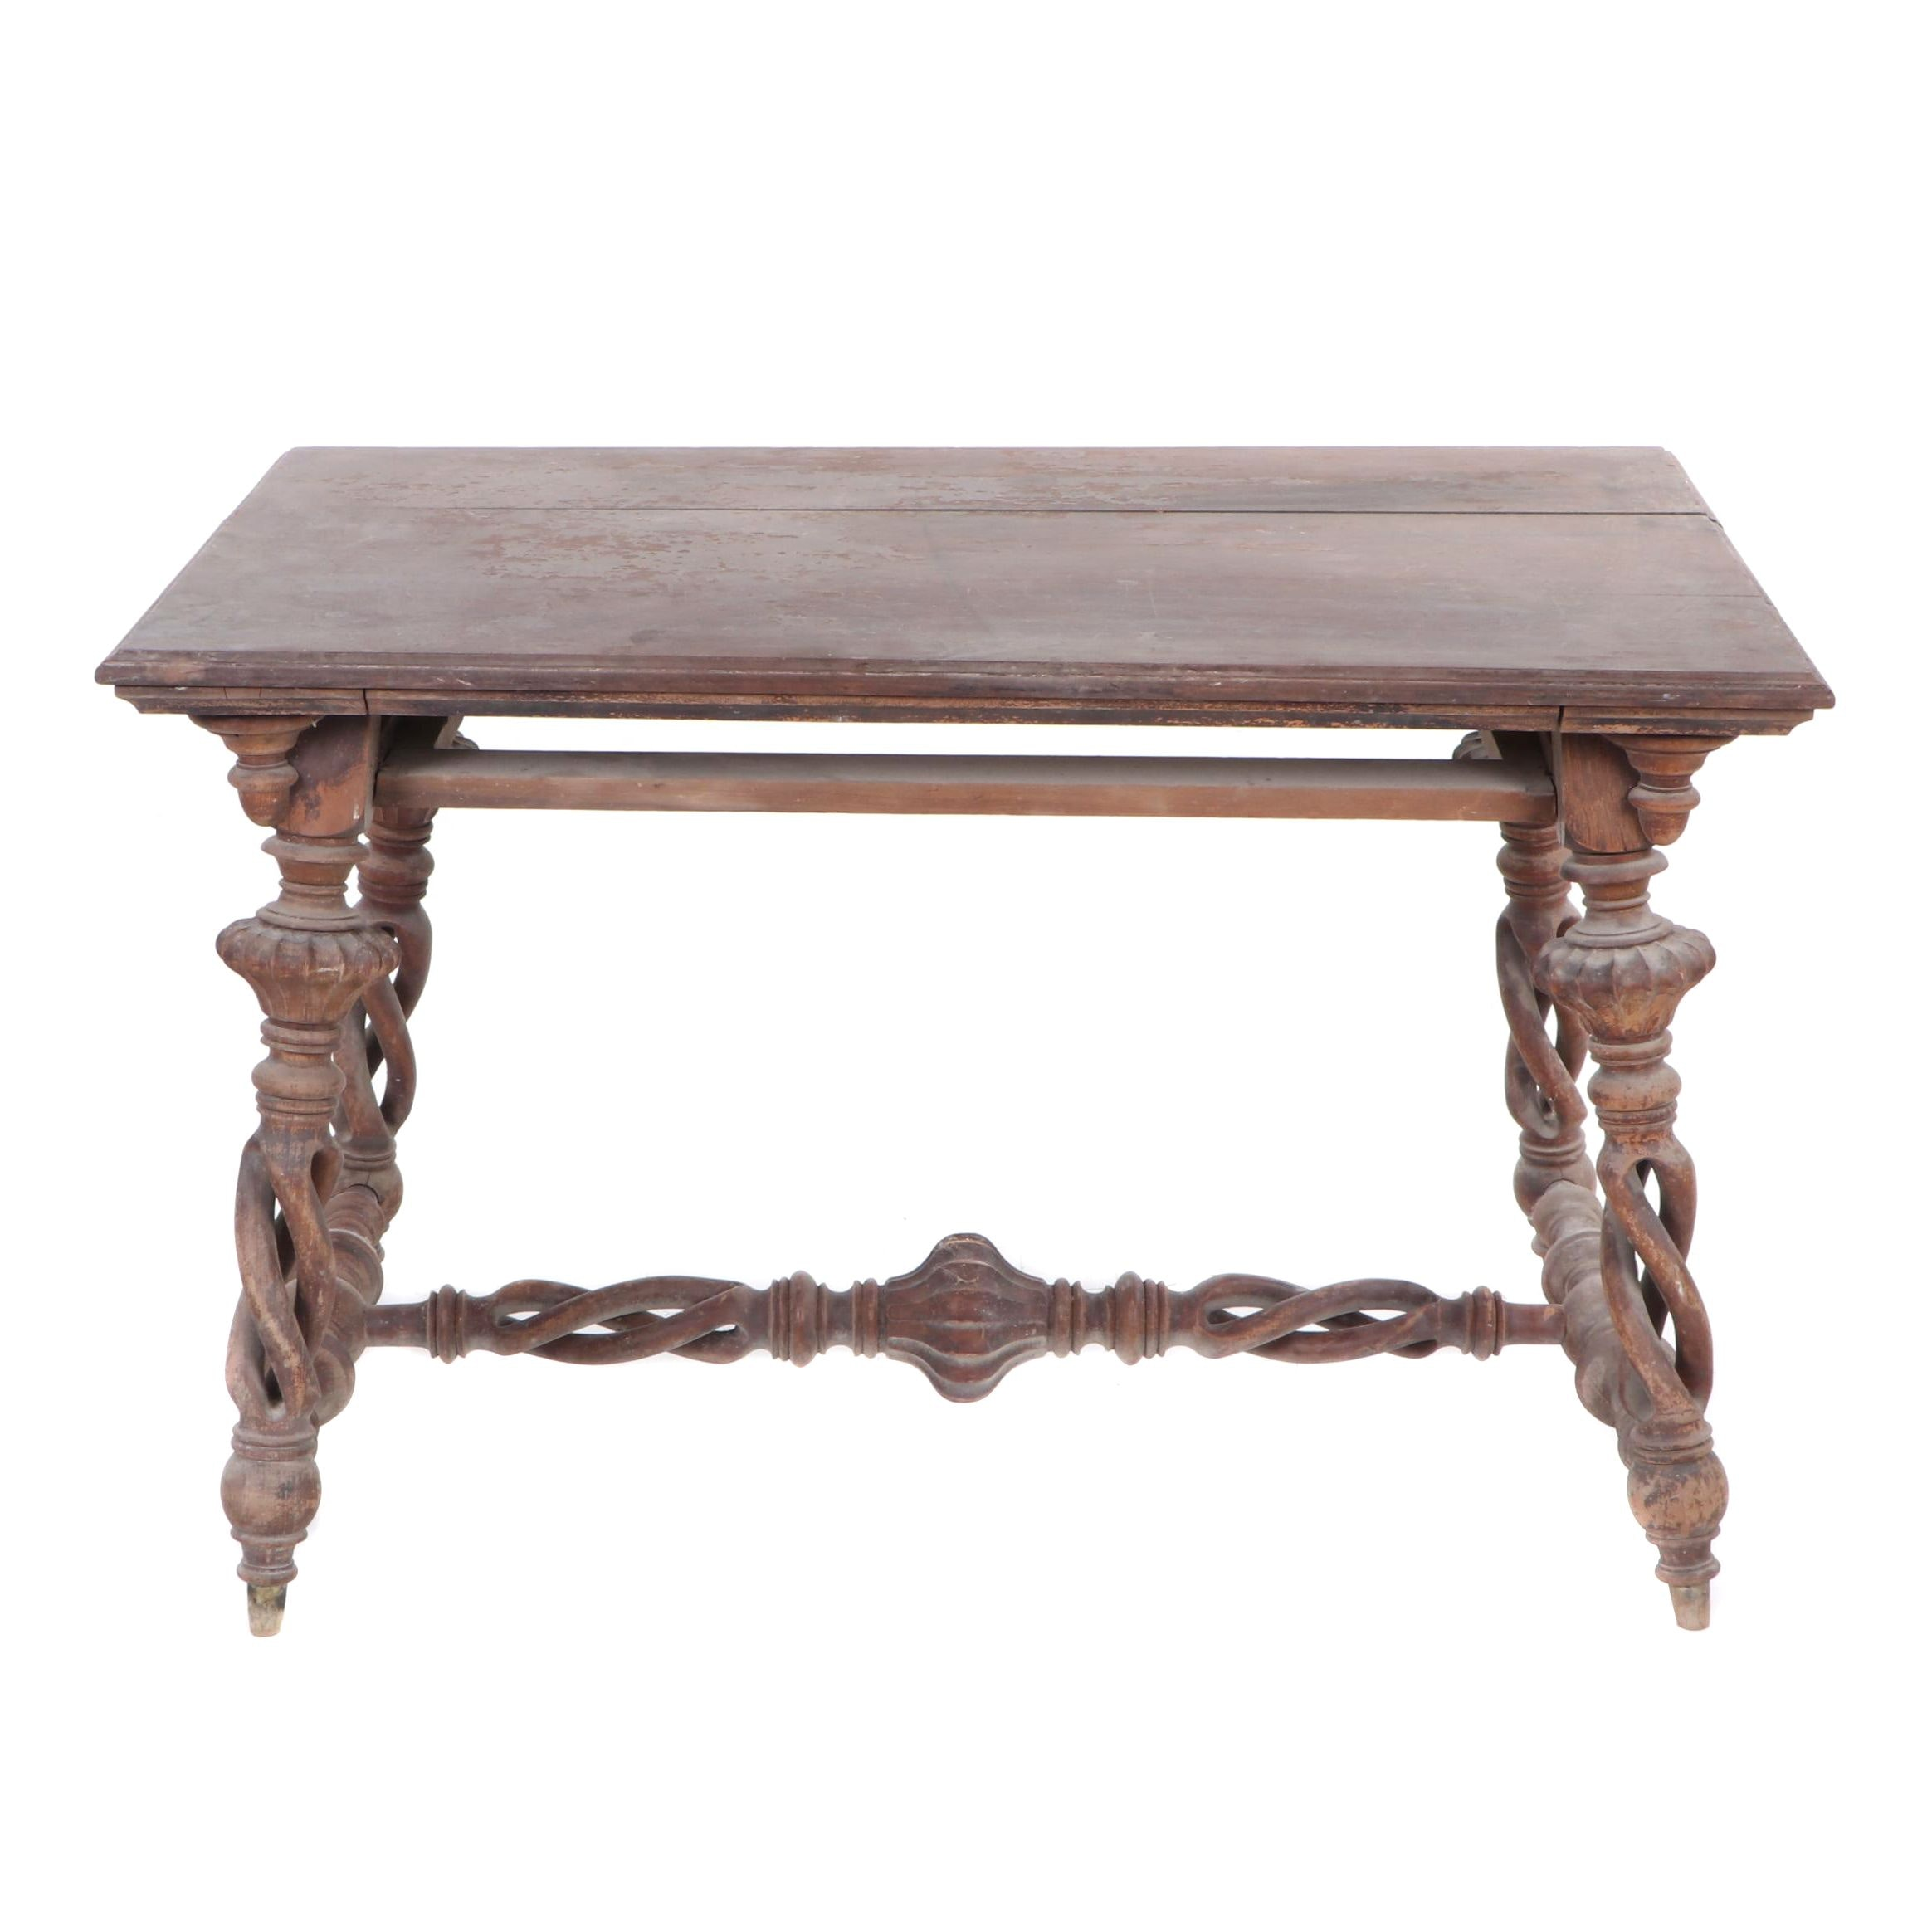 Renaissance Revival Style Table, Late 19th Century